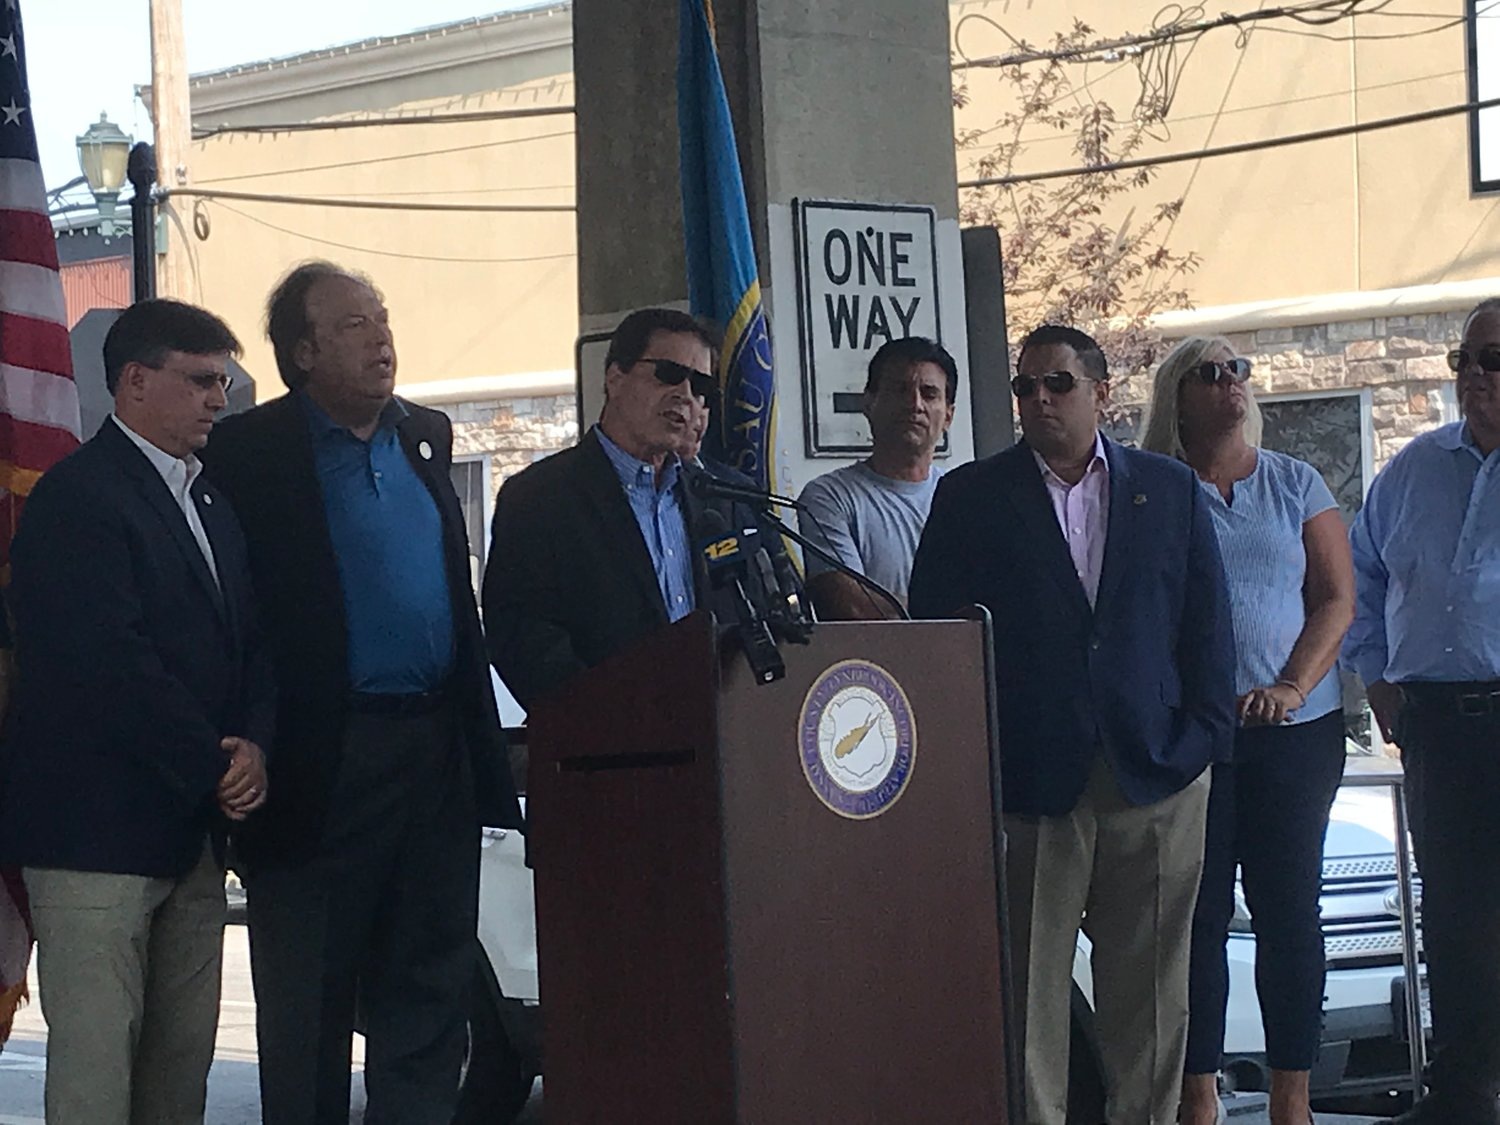 At a rally on Aug. 7, Lynbrook Mayor Alan Beach called on state officials, the Department of Environmental Conservation and National Grid to reach an agreement that would end a gas moratorium that has kept new businesses from opening in the village.